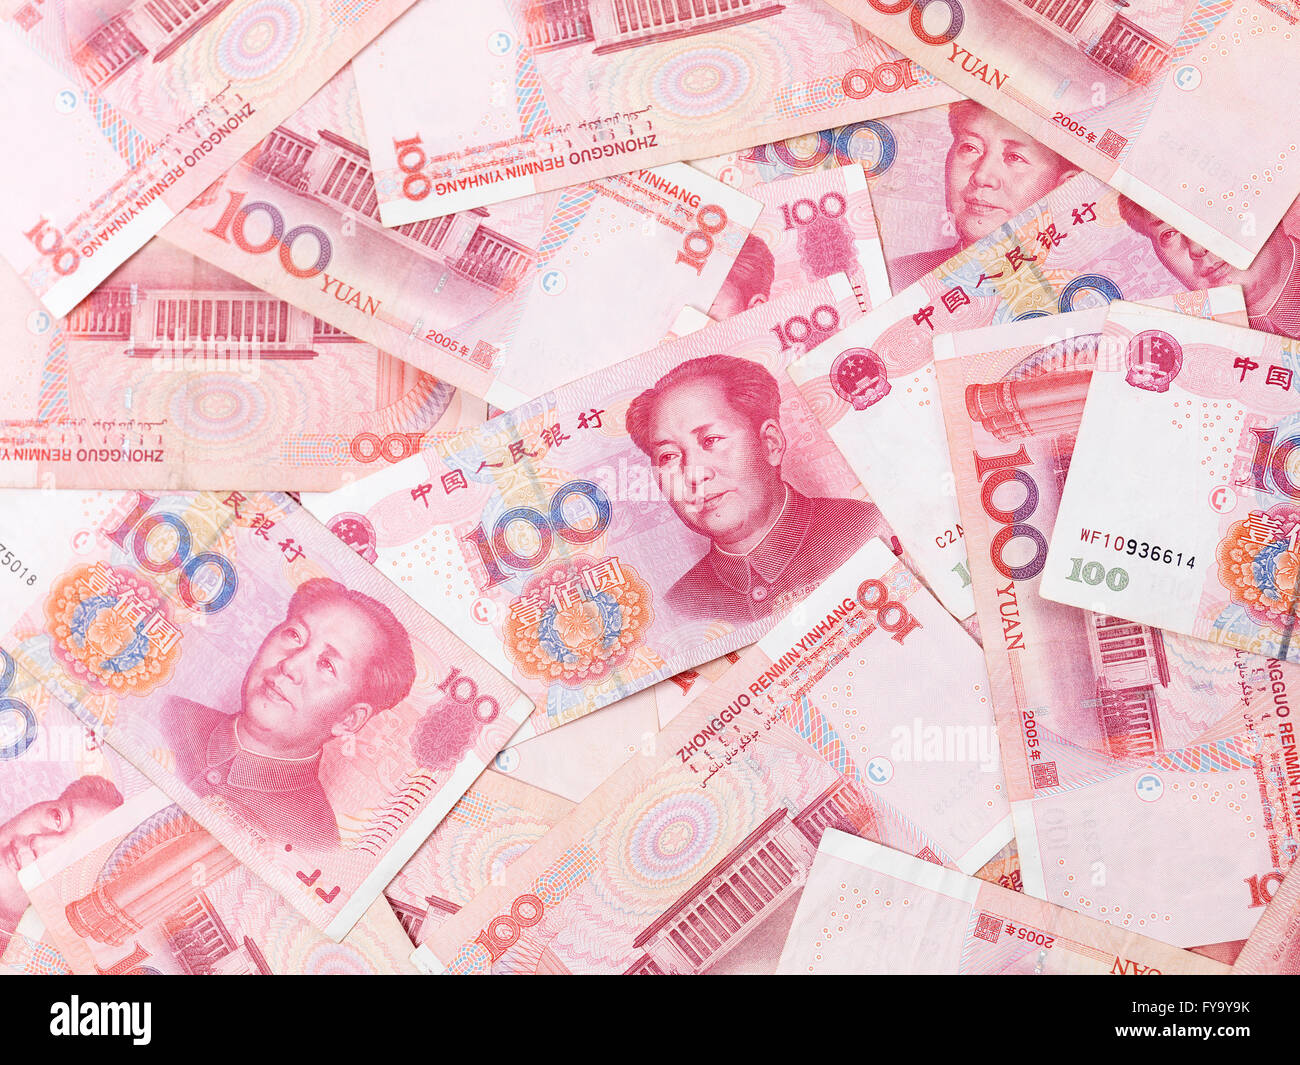 Renminbi bills, official currency of the People's Republic of China - Stock Image